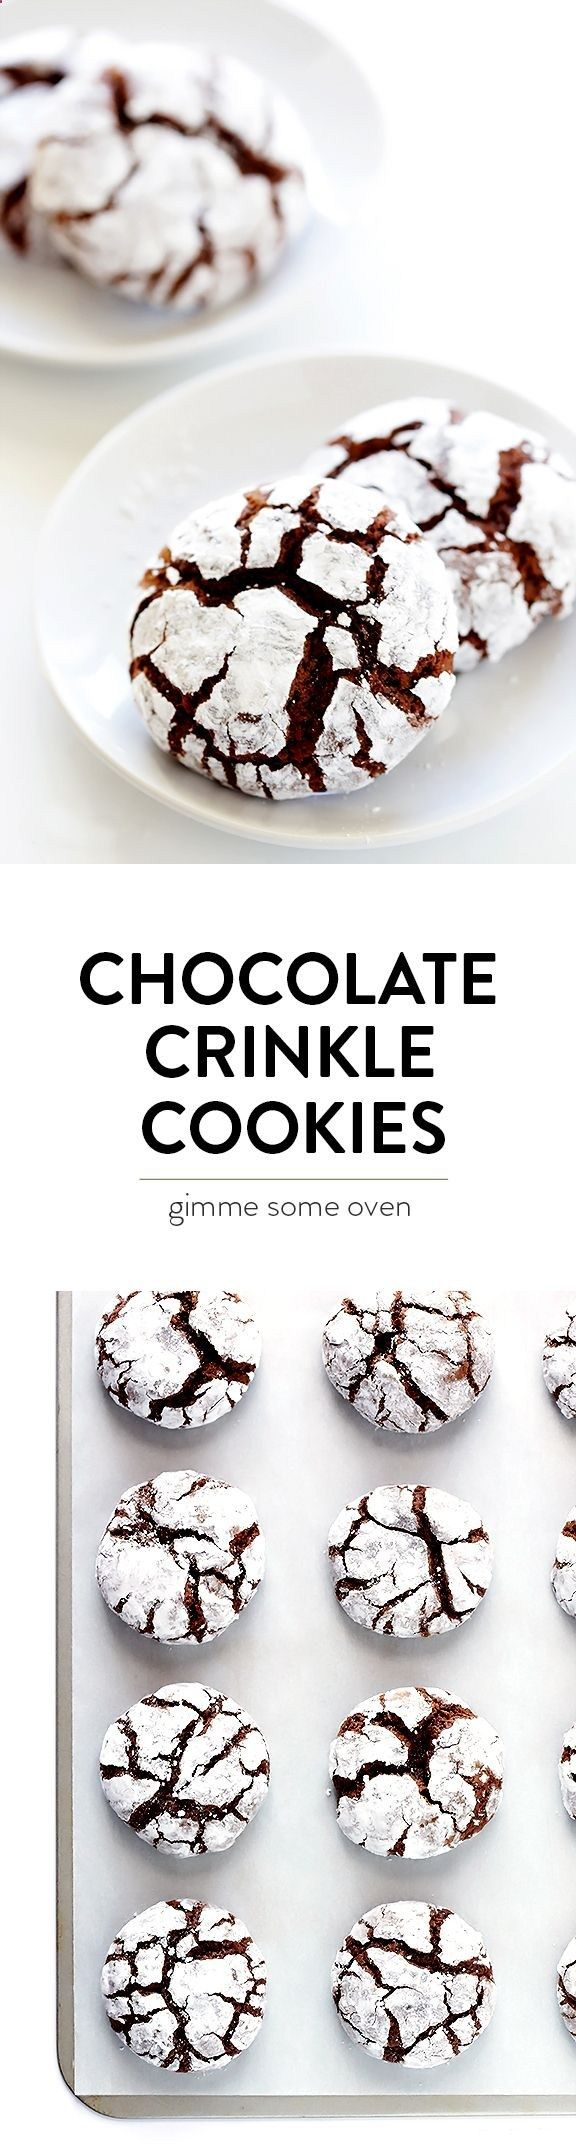 This Chocolate Crinkle Cookies recipe is a classic for a reason! Theyre easy to make, wonderfully sweet and chocolatey, and perfect for the holidays!